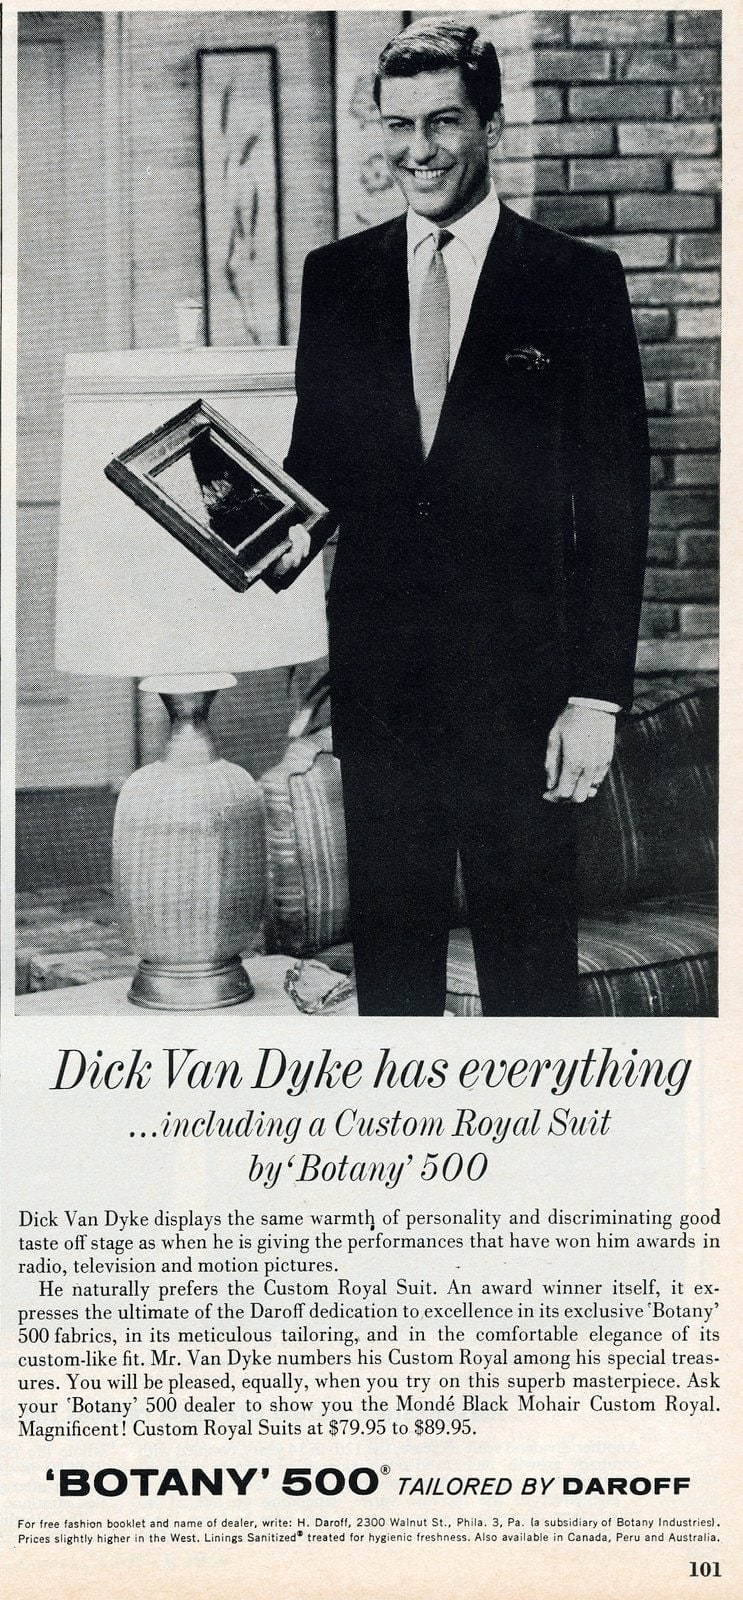 1956 - Dick Van Dyke for Botany 500 suits